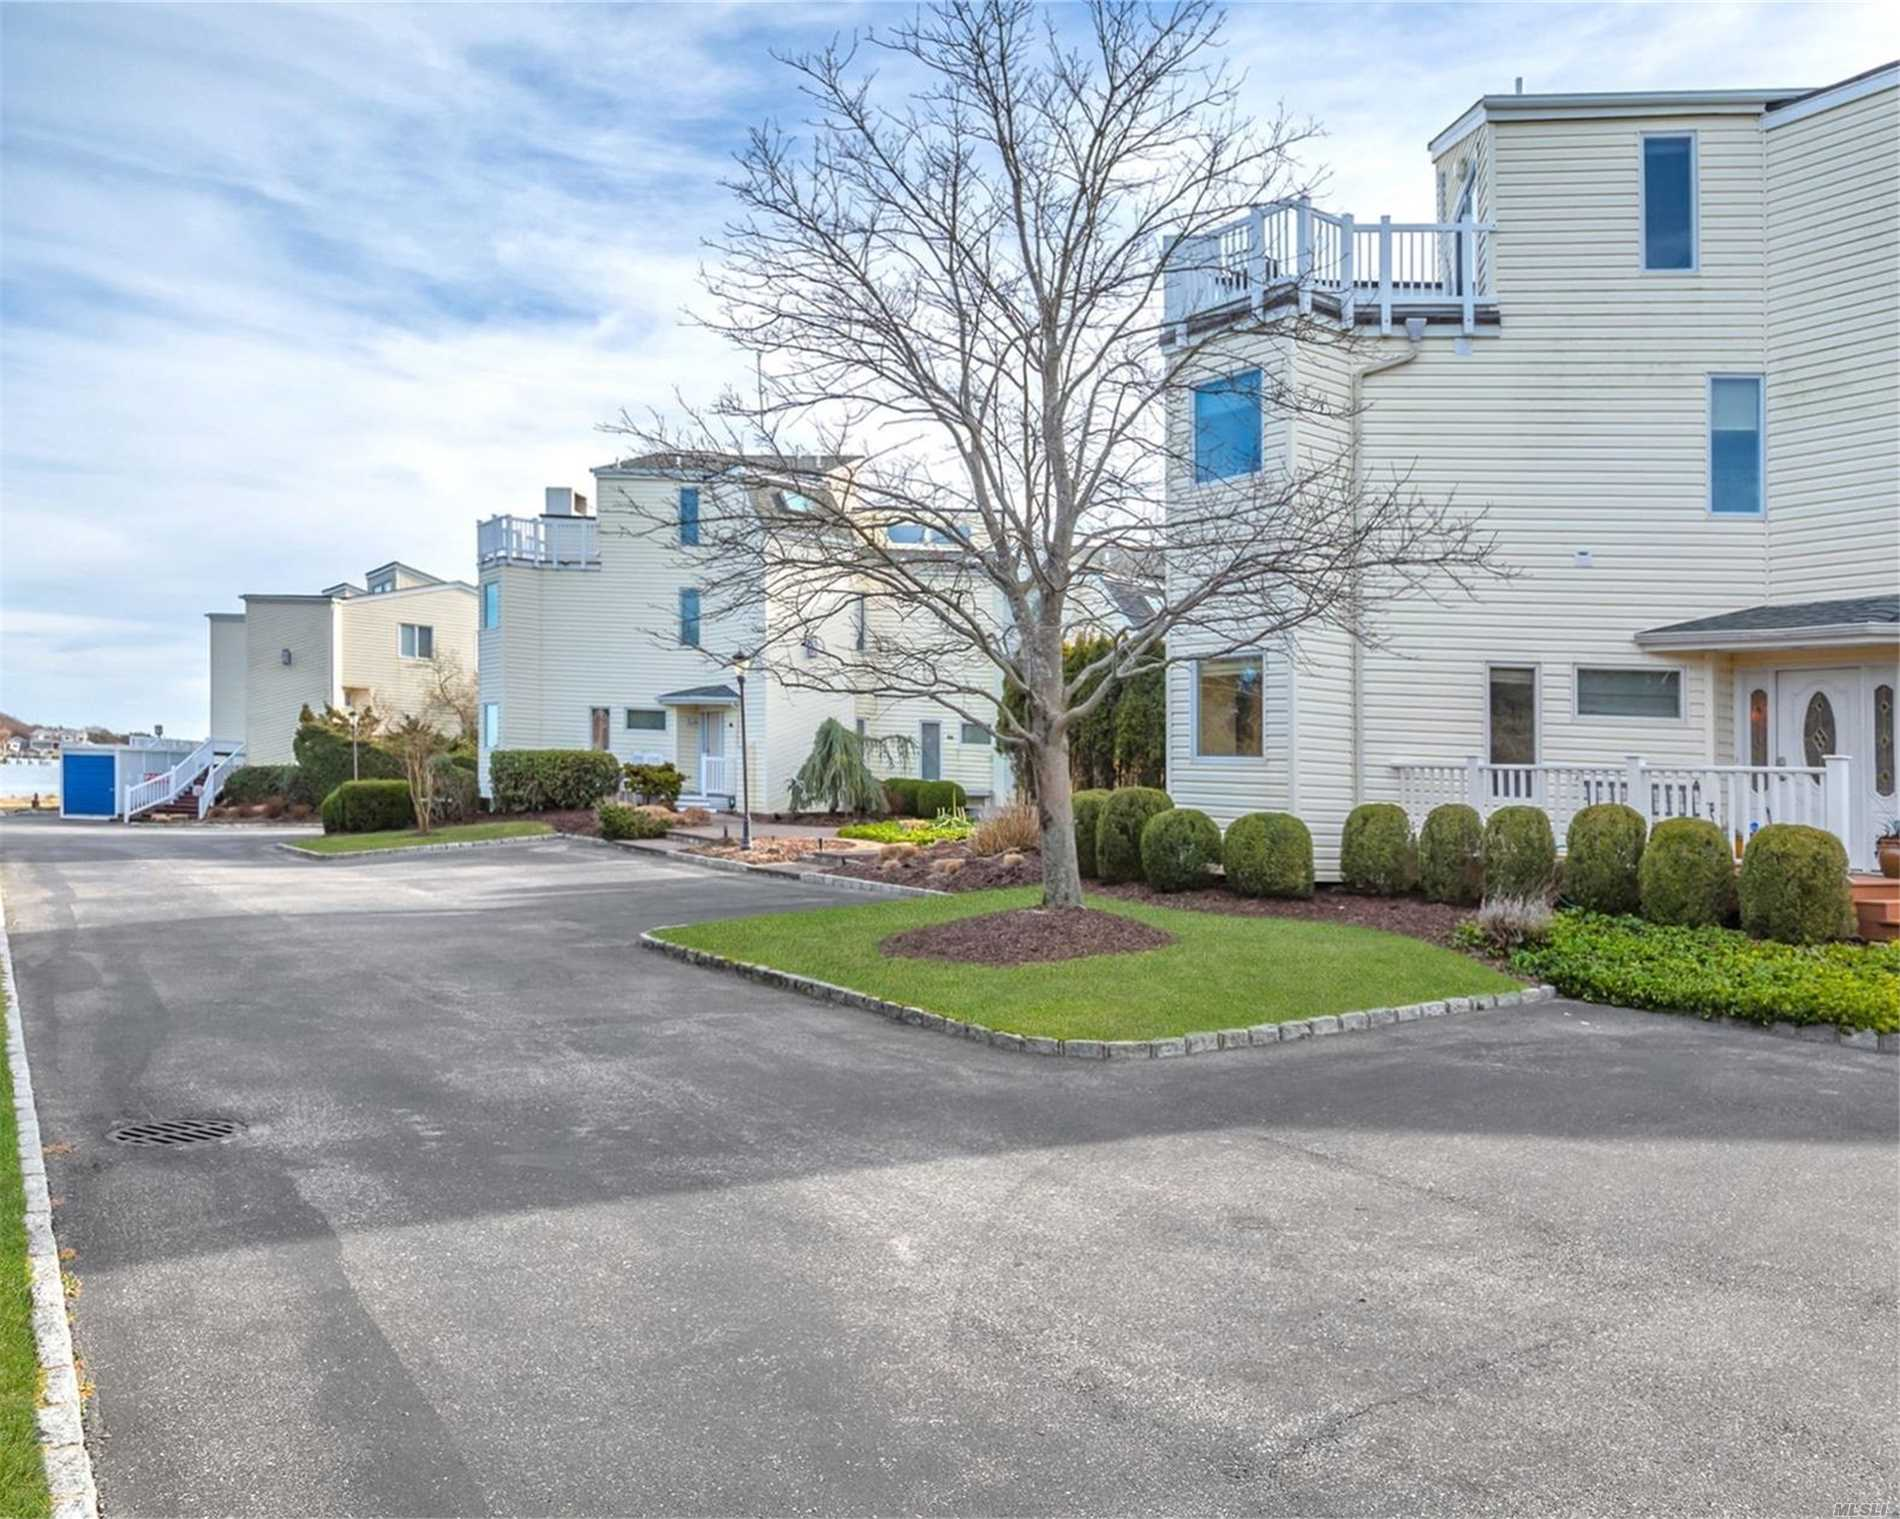 8 Apaucuck Point Rd - Westhampton, New York